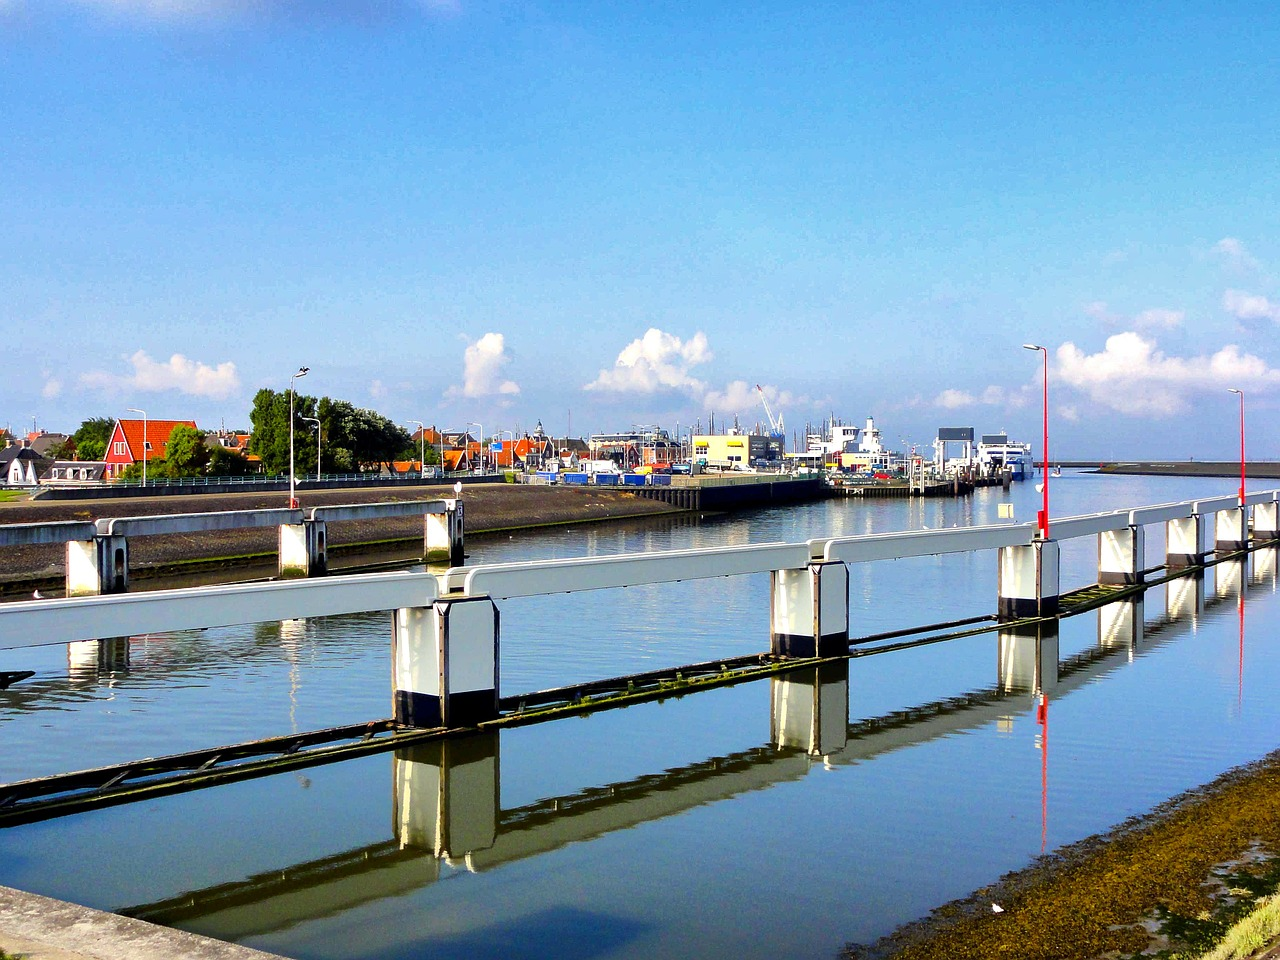 harlingen netherlands canal free photo